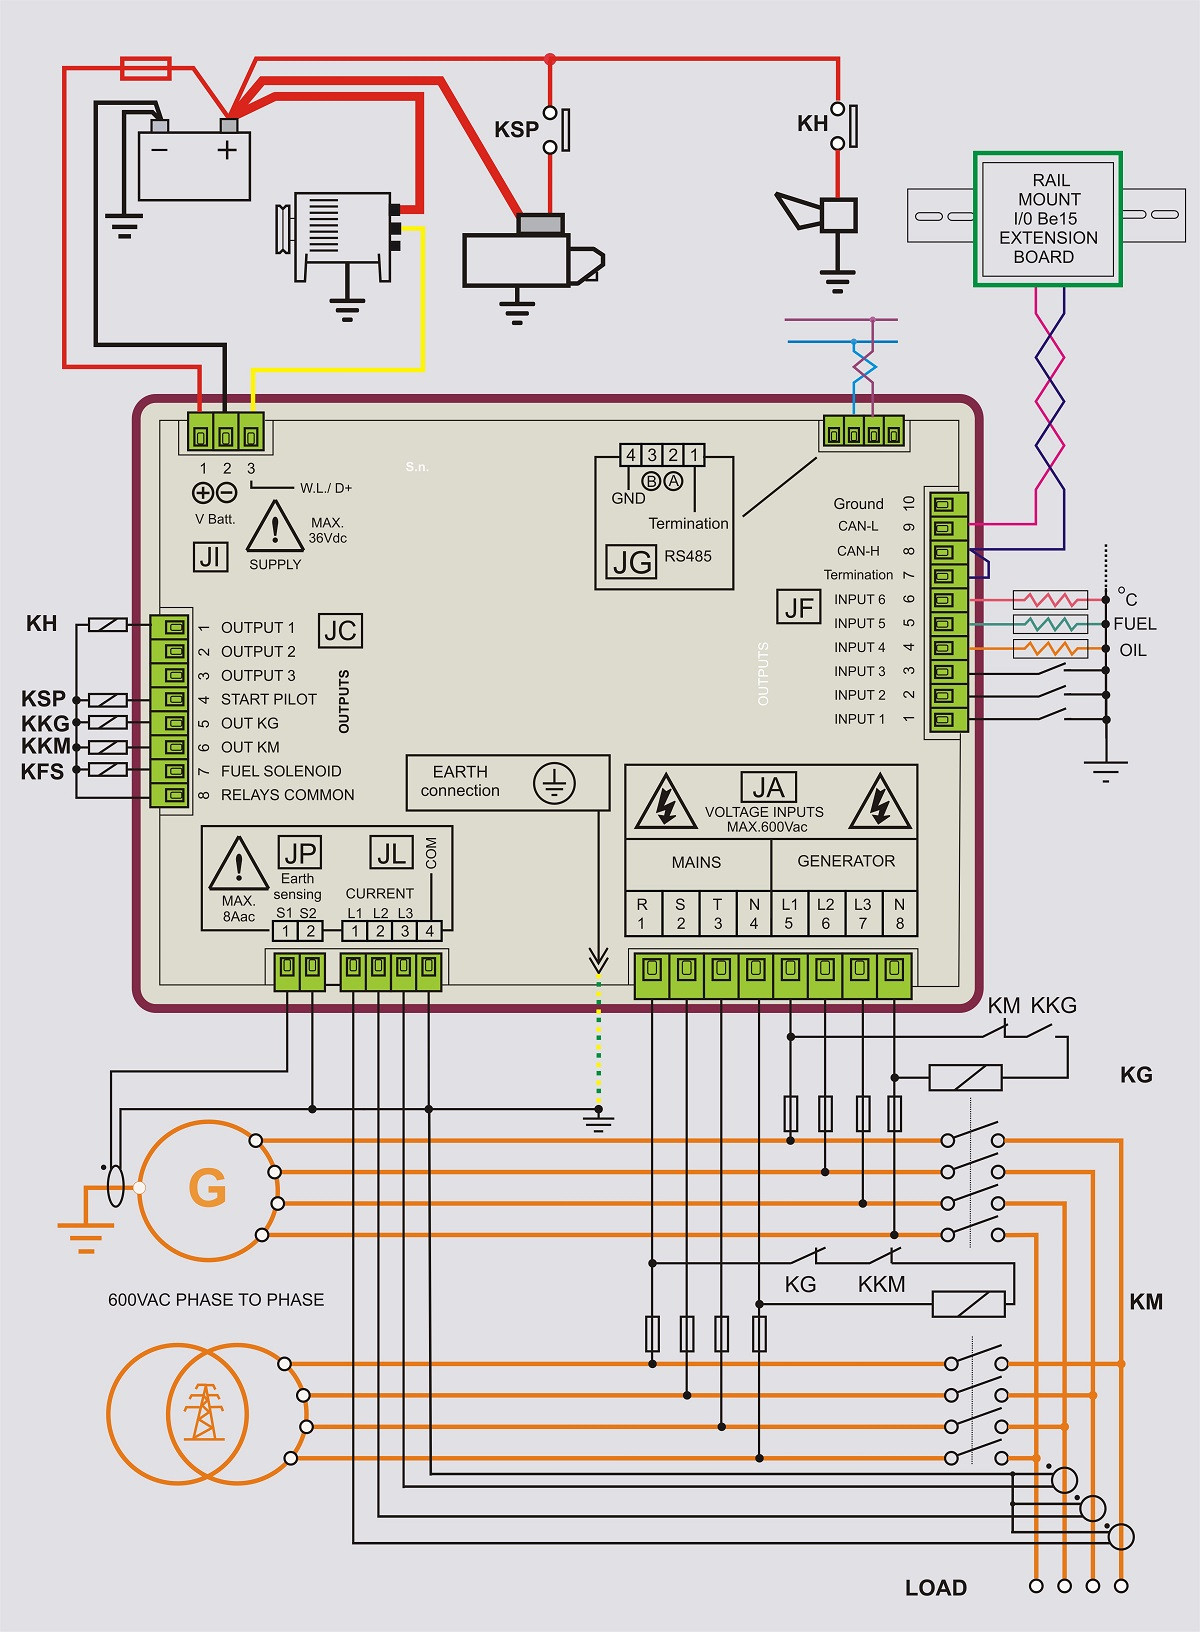 DIAGRAM] True Tuc 27f Wiring Diagram FULL Version HD Quality Wiring Diagram  - VISUALDIAGRAM.SPANOBAR.IT | True Twt 27f Wiring Diagram |  | visualdiagram.spanobar.it